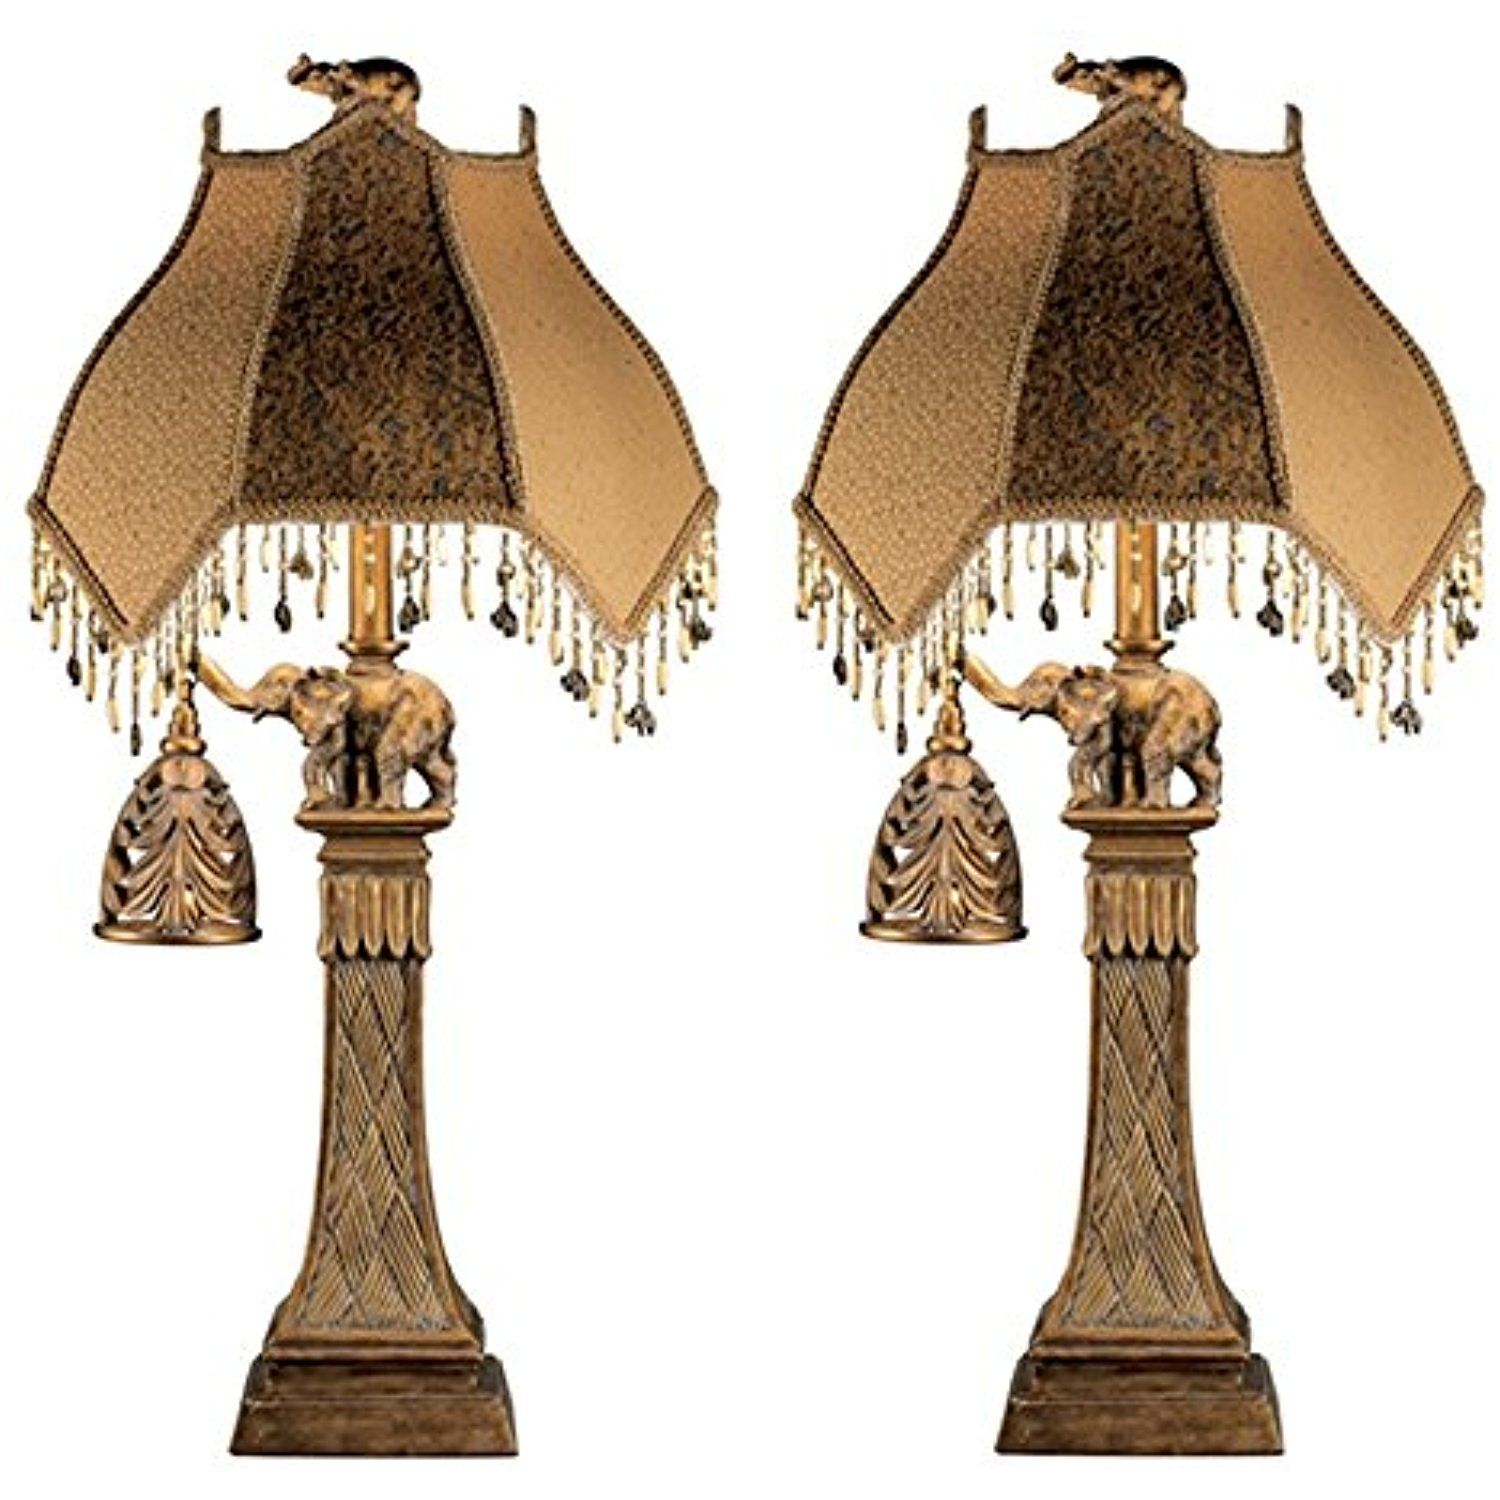 Ashley Furniture Signature Design Elephant Theme Table Lamp With Nightlight Set Of 2 Bronze Finish You Can Get Additional De Lamp Lamp Sets Table Lamp